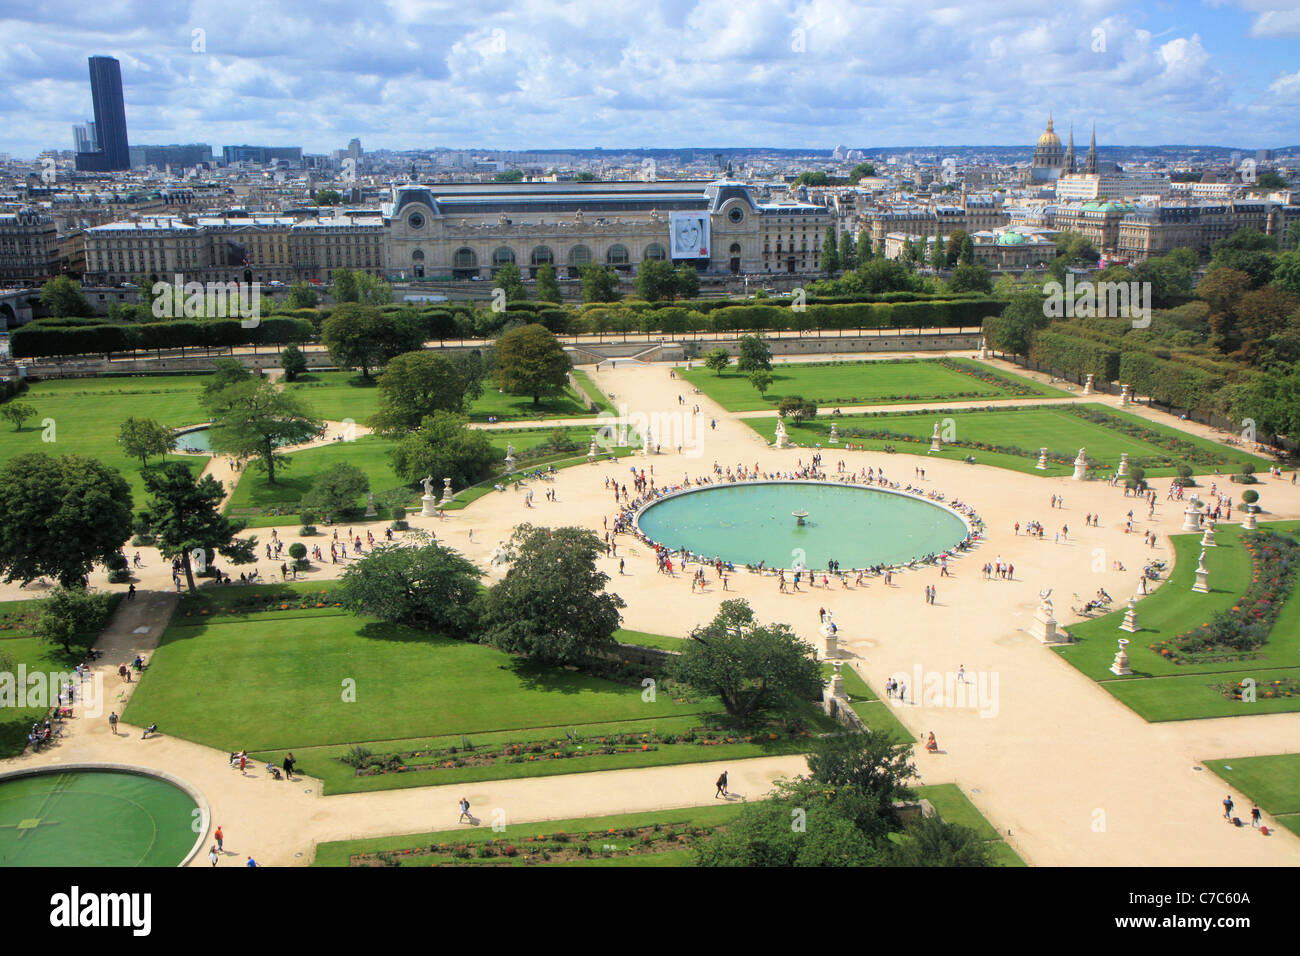 aerial view of jardin des tuileries from the great wheel paris france stock - Jardins Des Tuileries